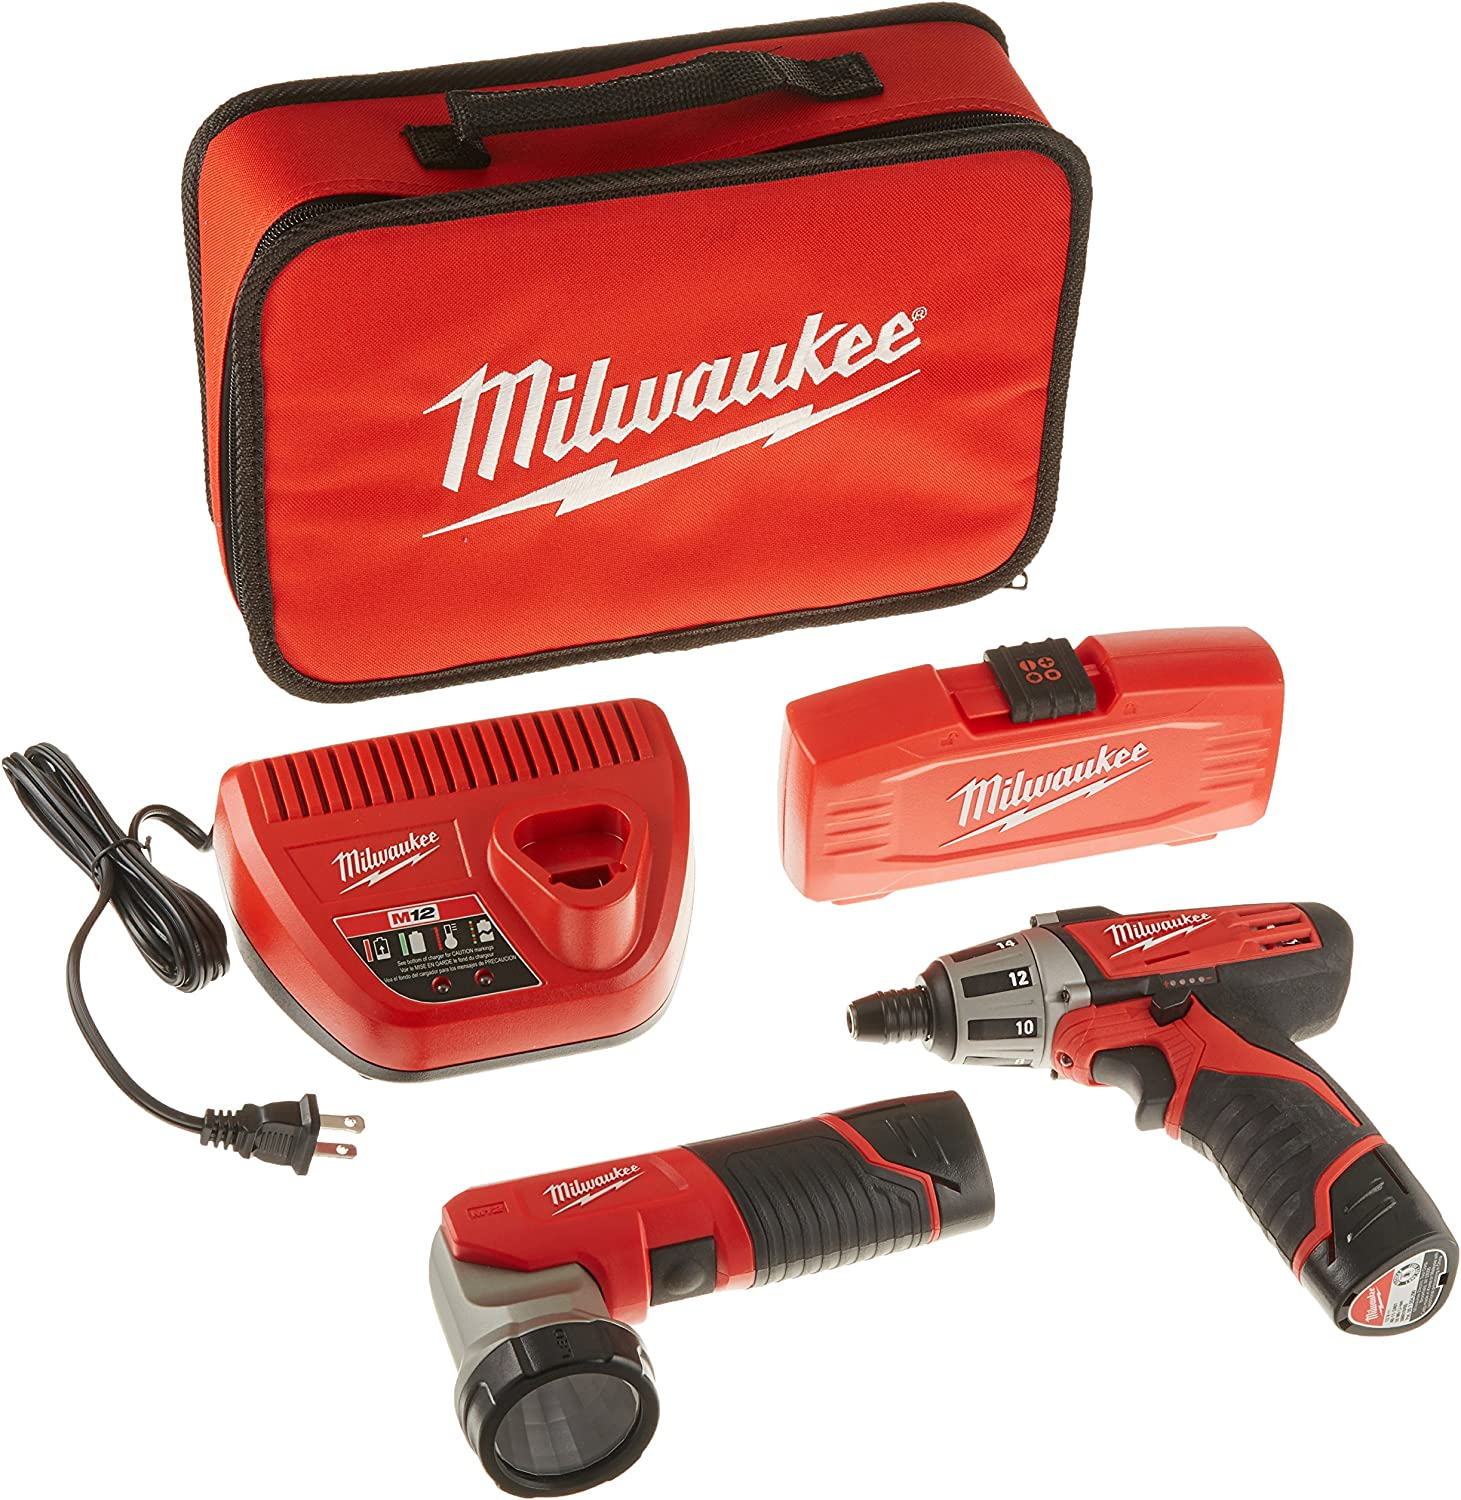 MILWAUKEE ELEC TOOL 2482-22 M12 12V Cordless Lithium-Ion 2 Tool Combo Kit with Bit Set